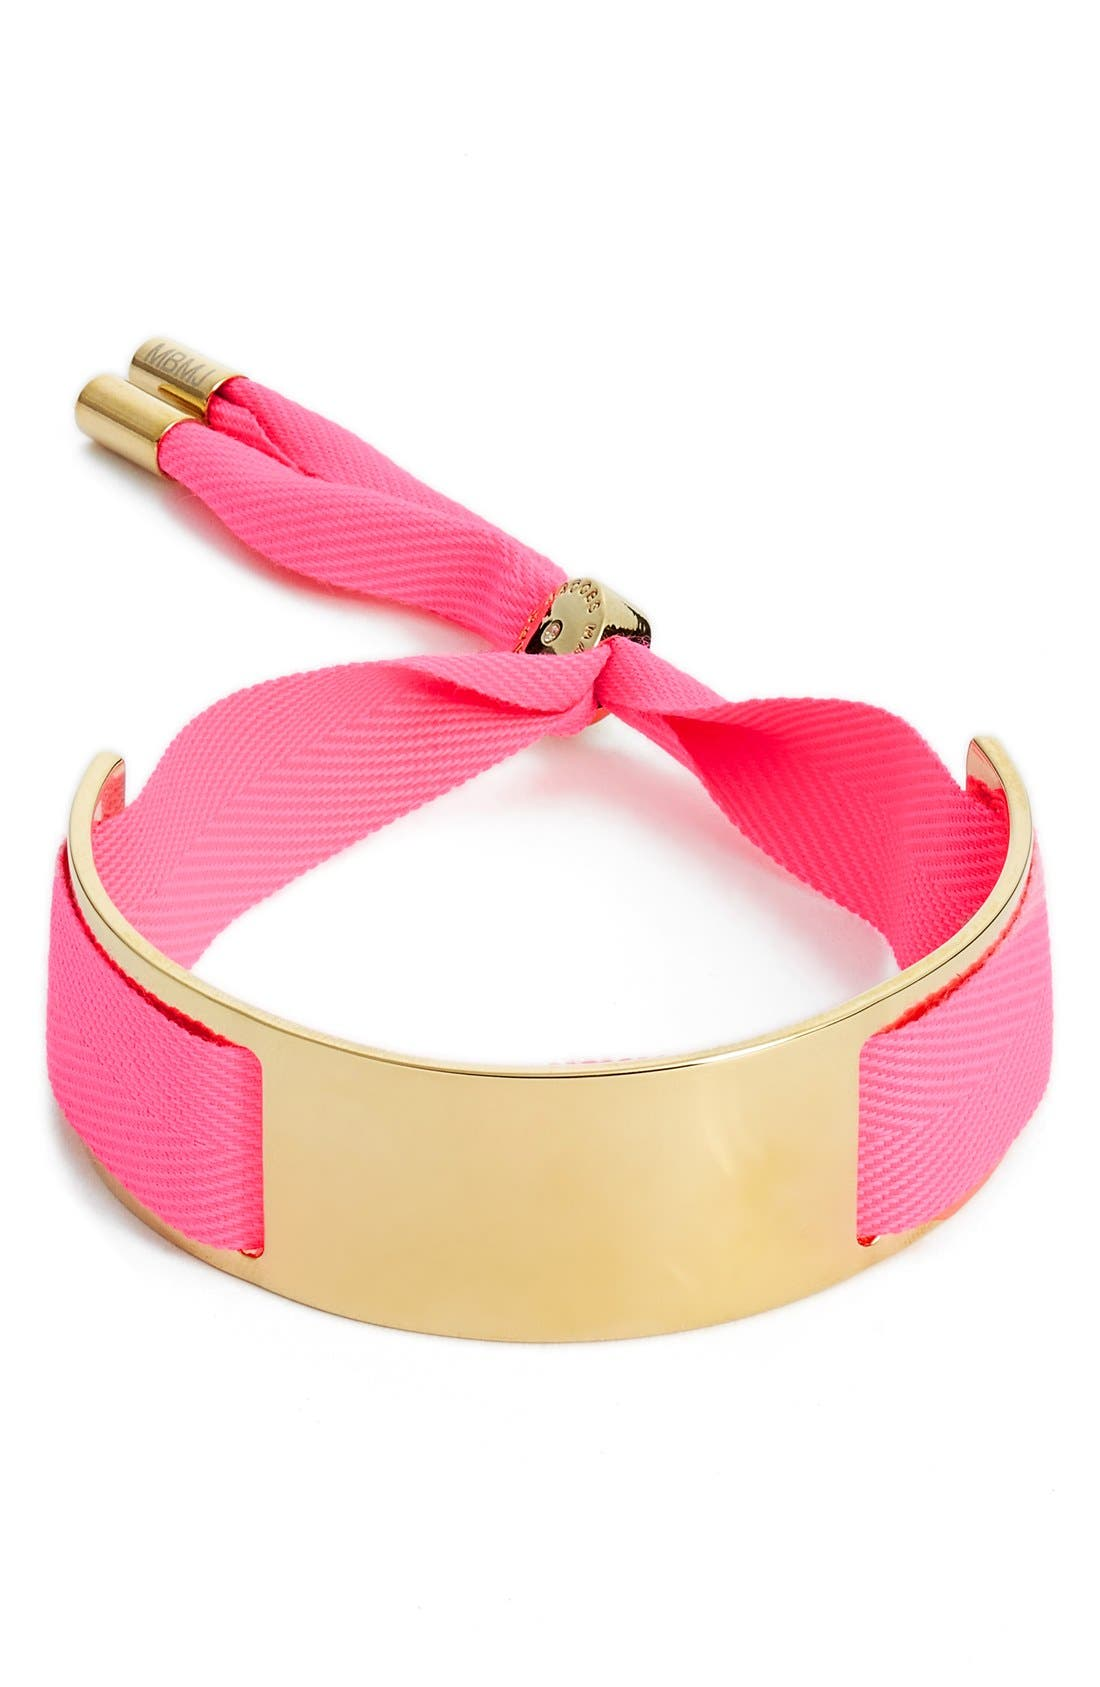 Alternate Image 1 Selected - MARC BY MARC JACOBS Ribbon Friendship Bracelet